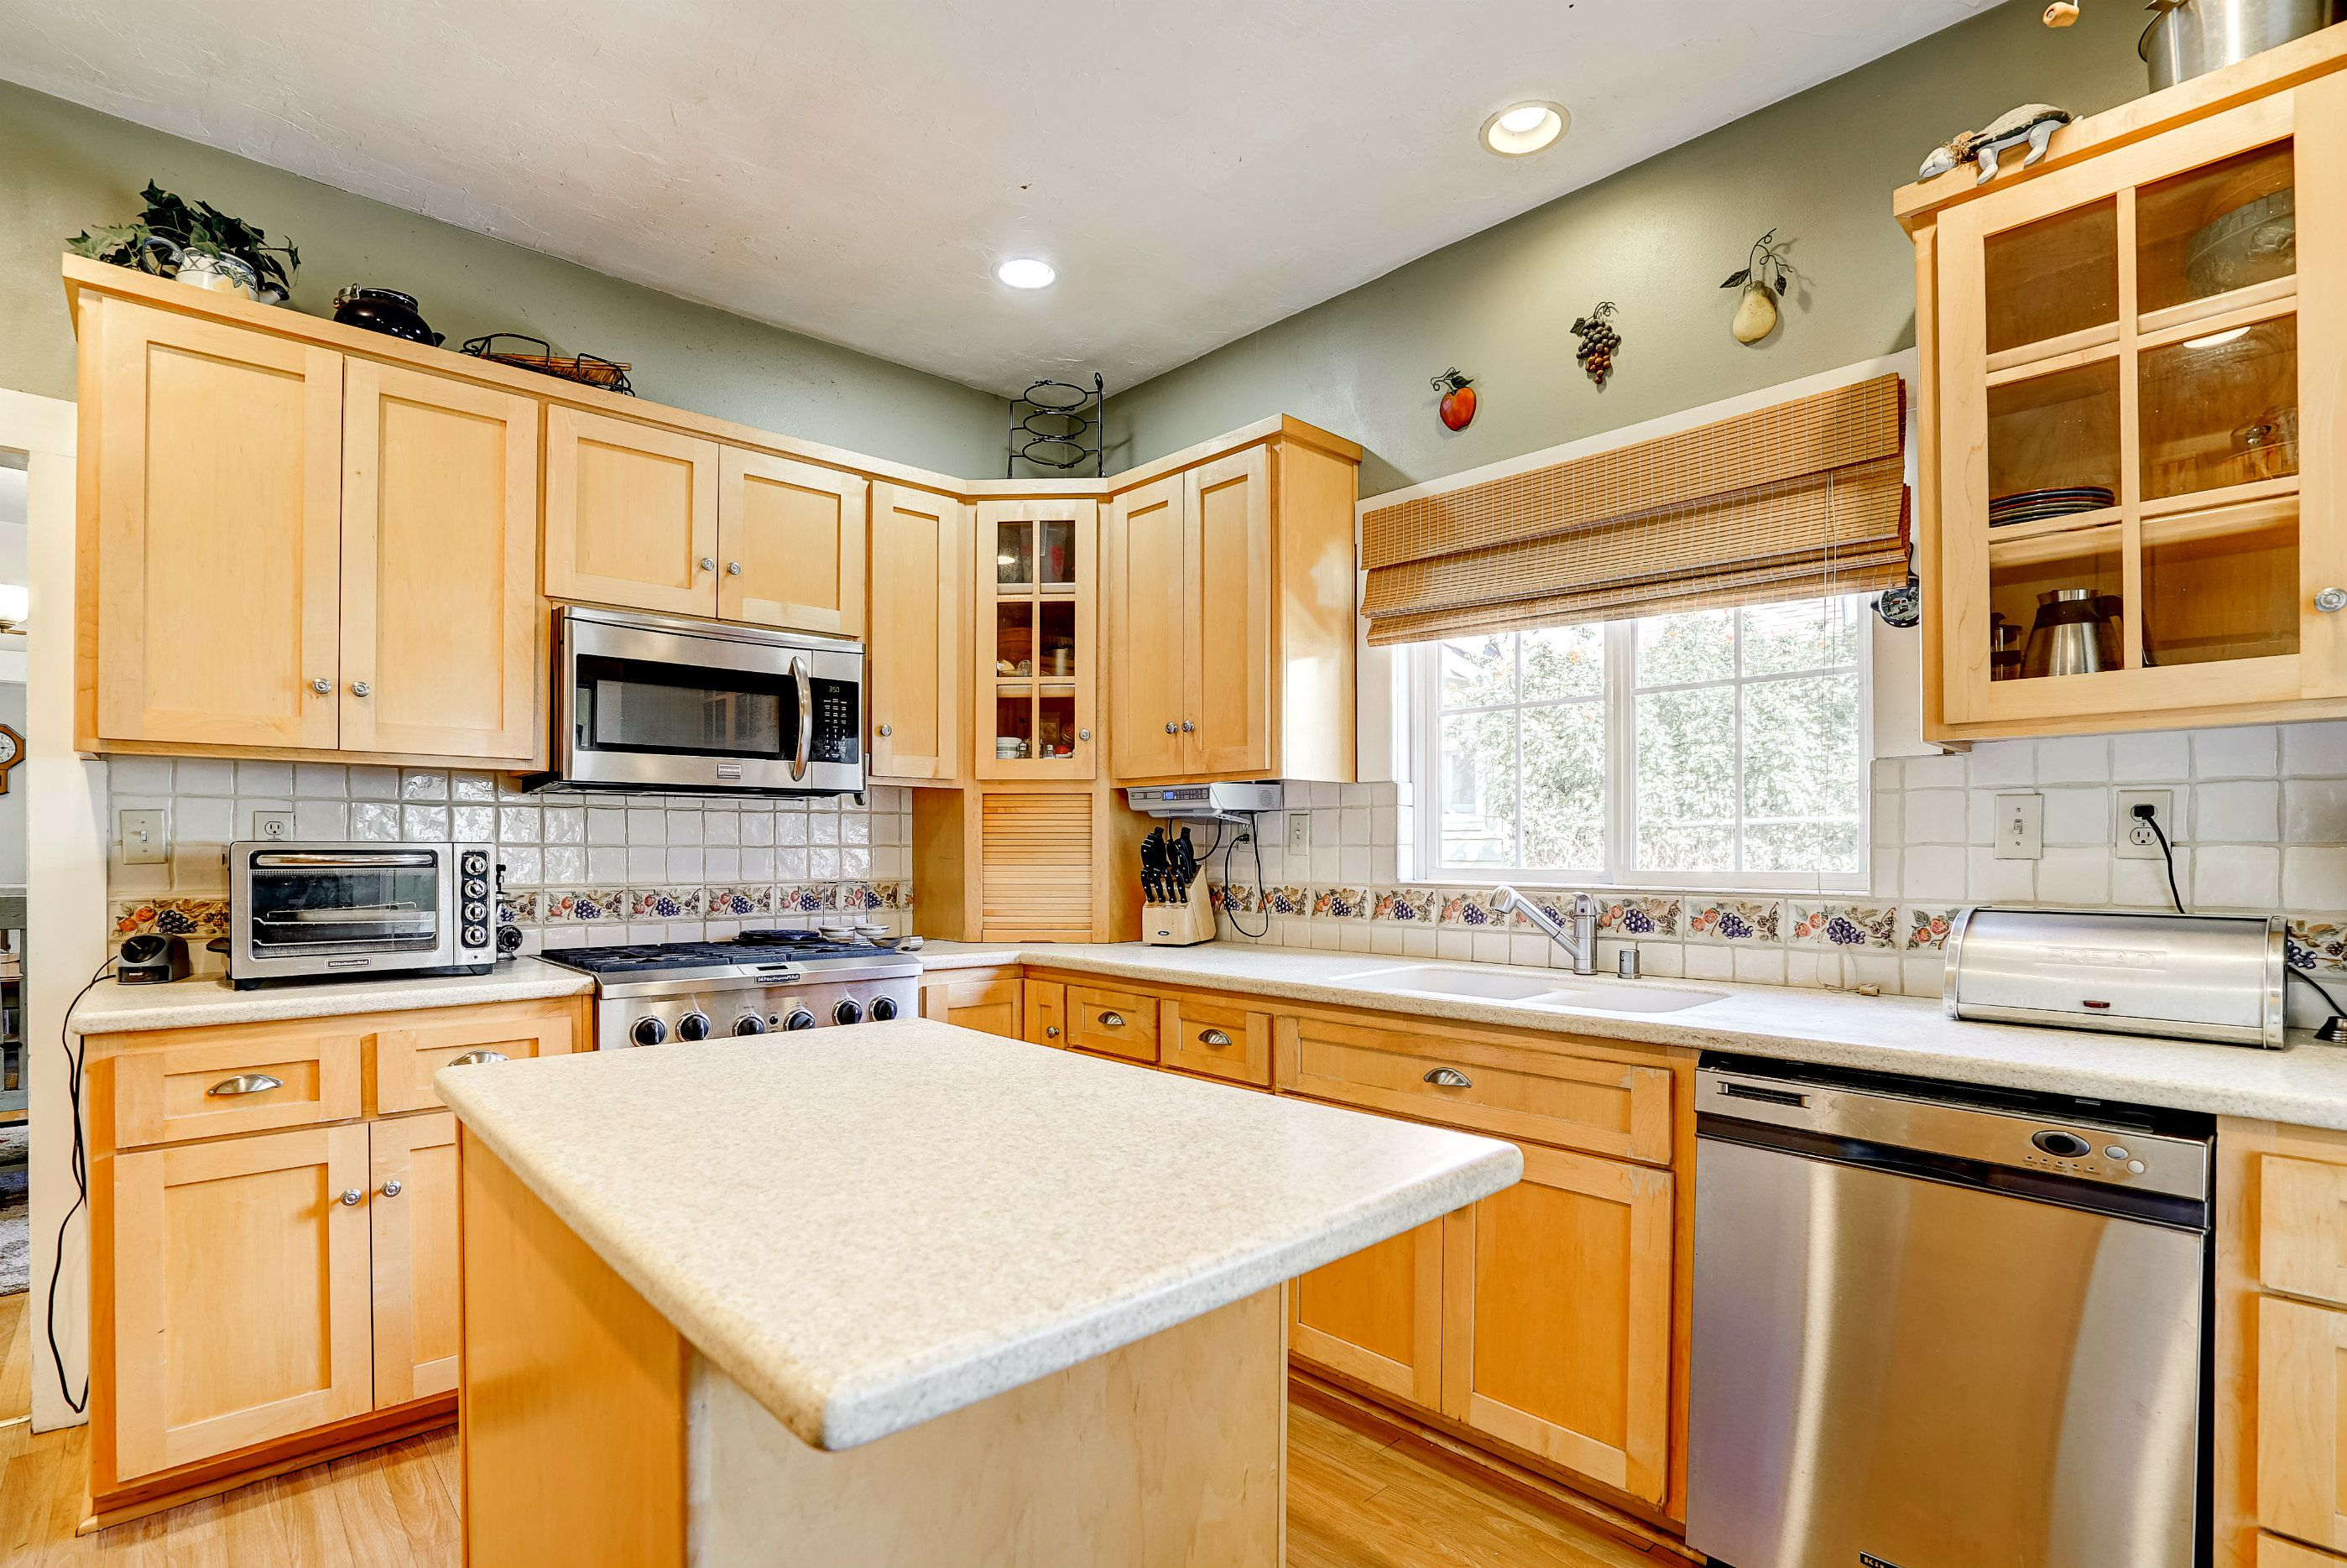 Wood floors, dishwasher, gas stove, and built-in microwave.